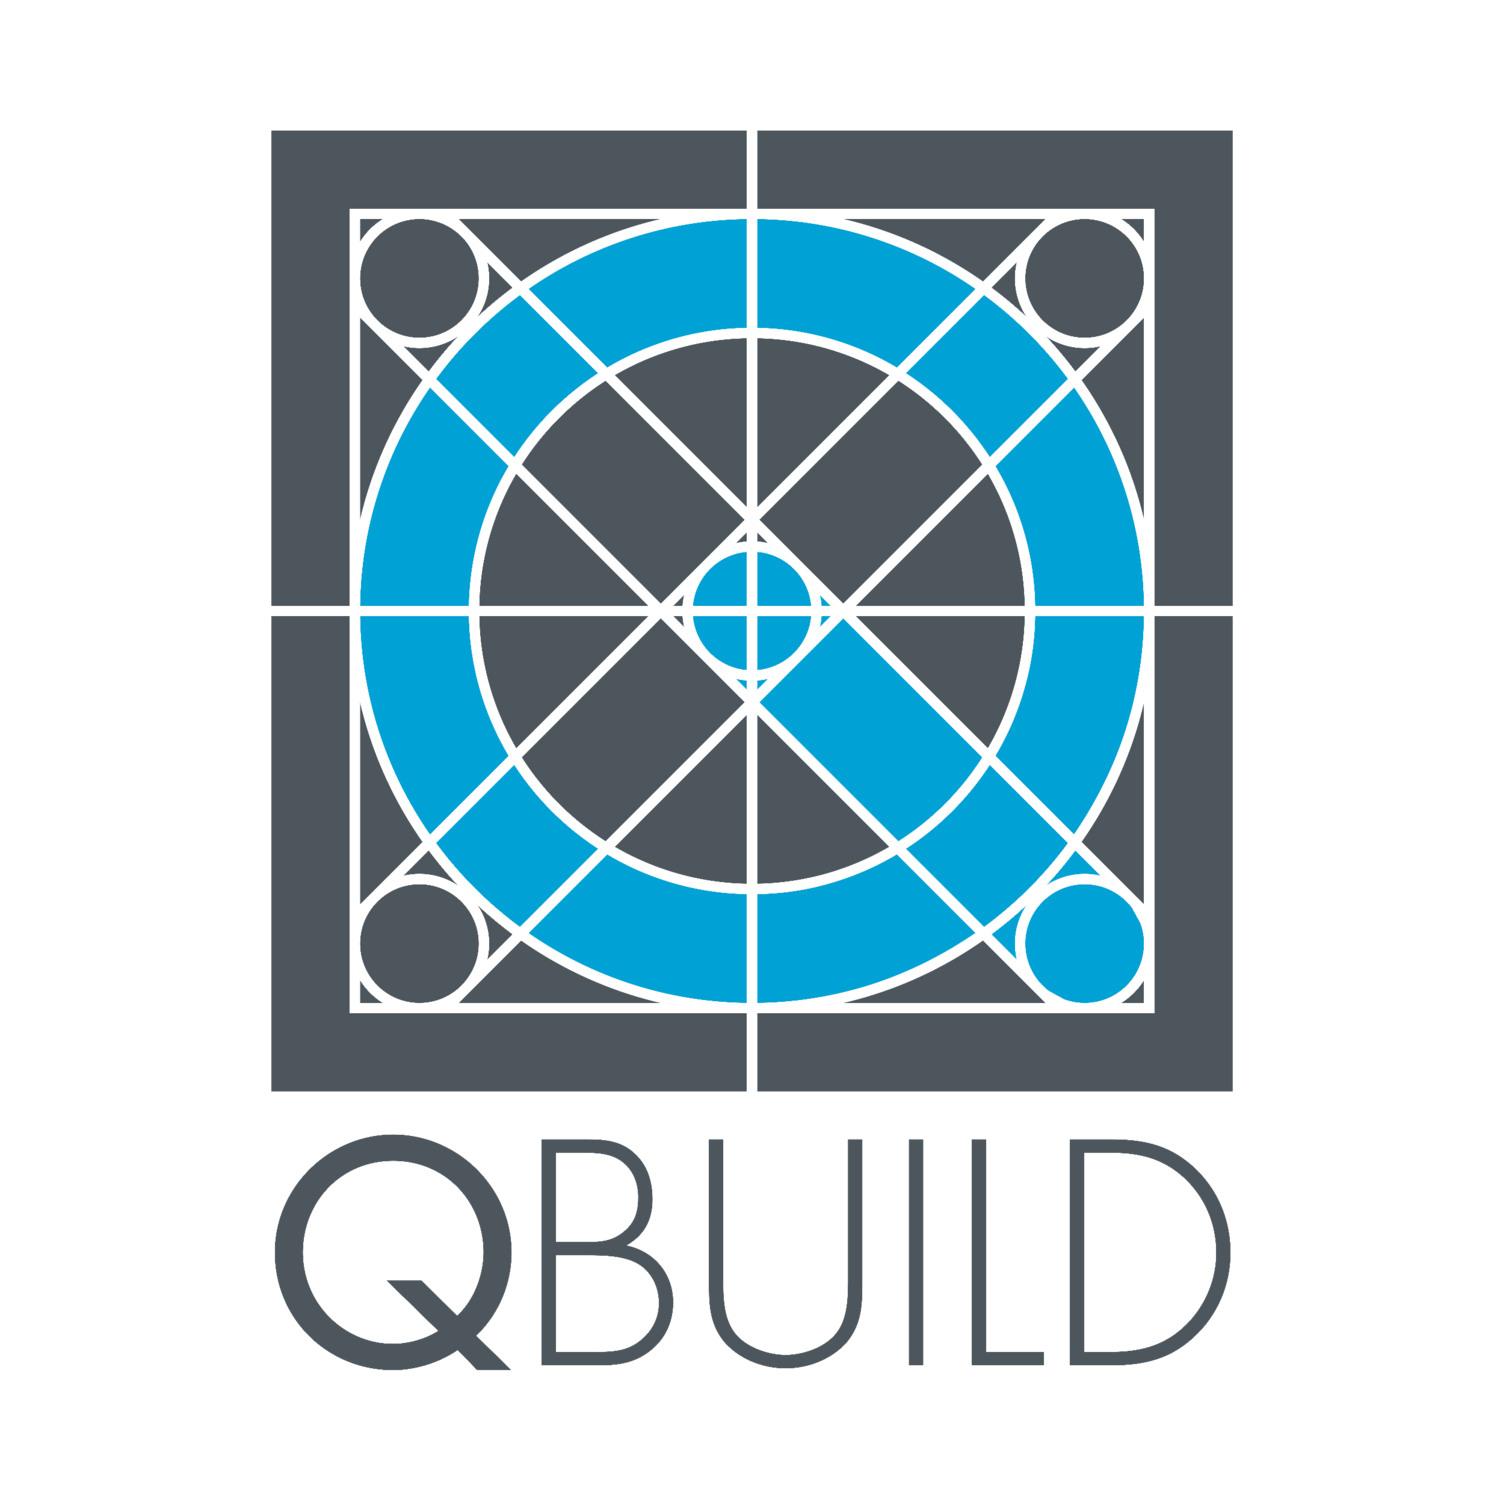 Q Build LTD | Luxury Home Building in Scotland